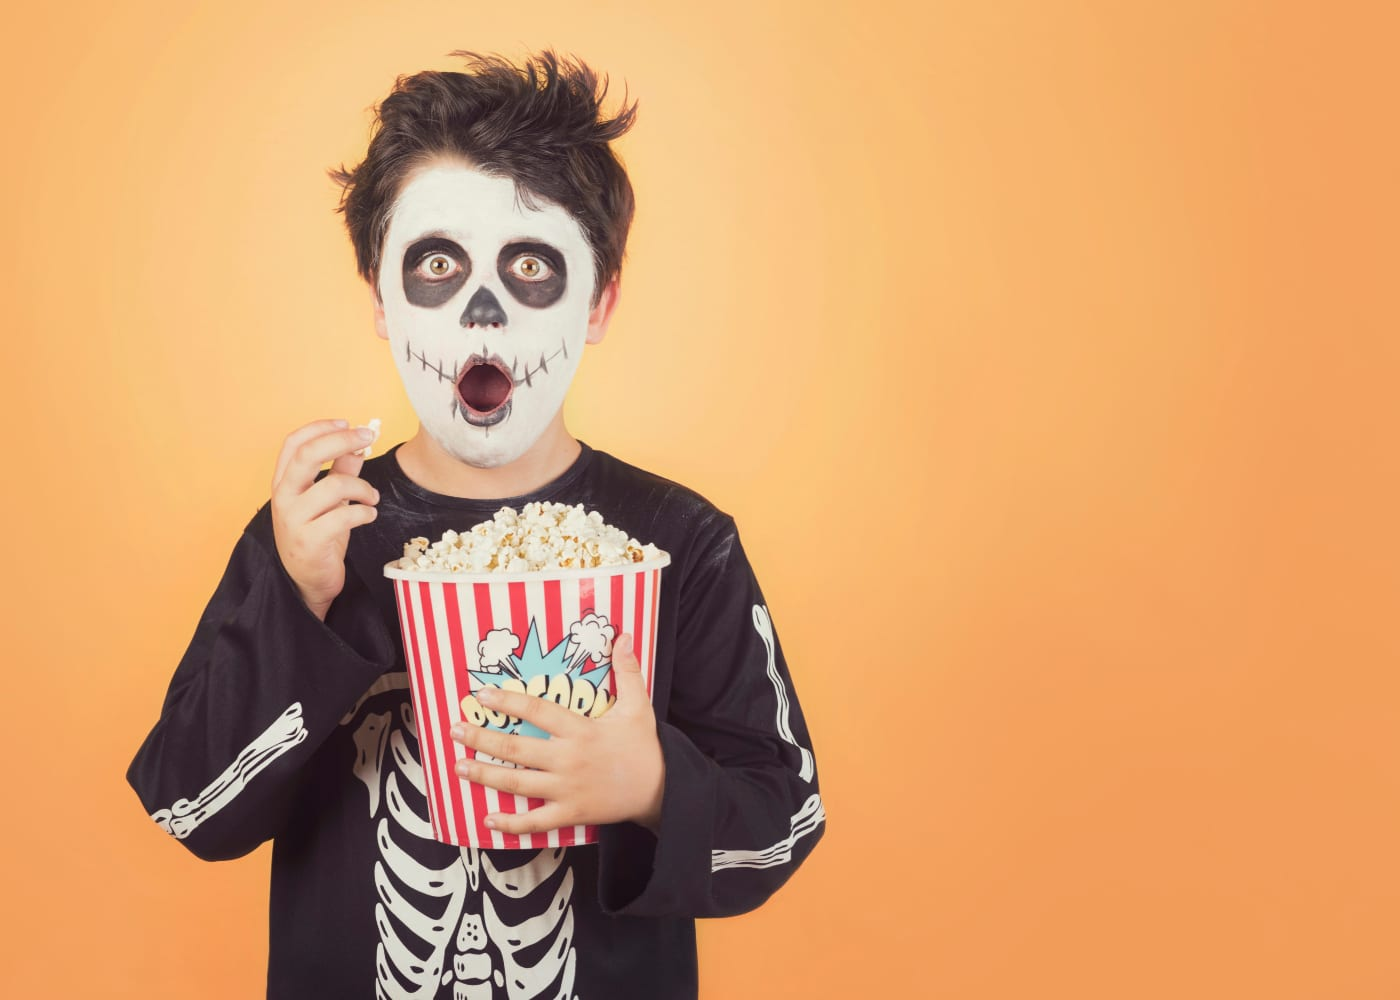 20 of the best Halloween movies for kids of all ages